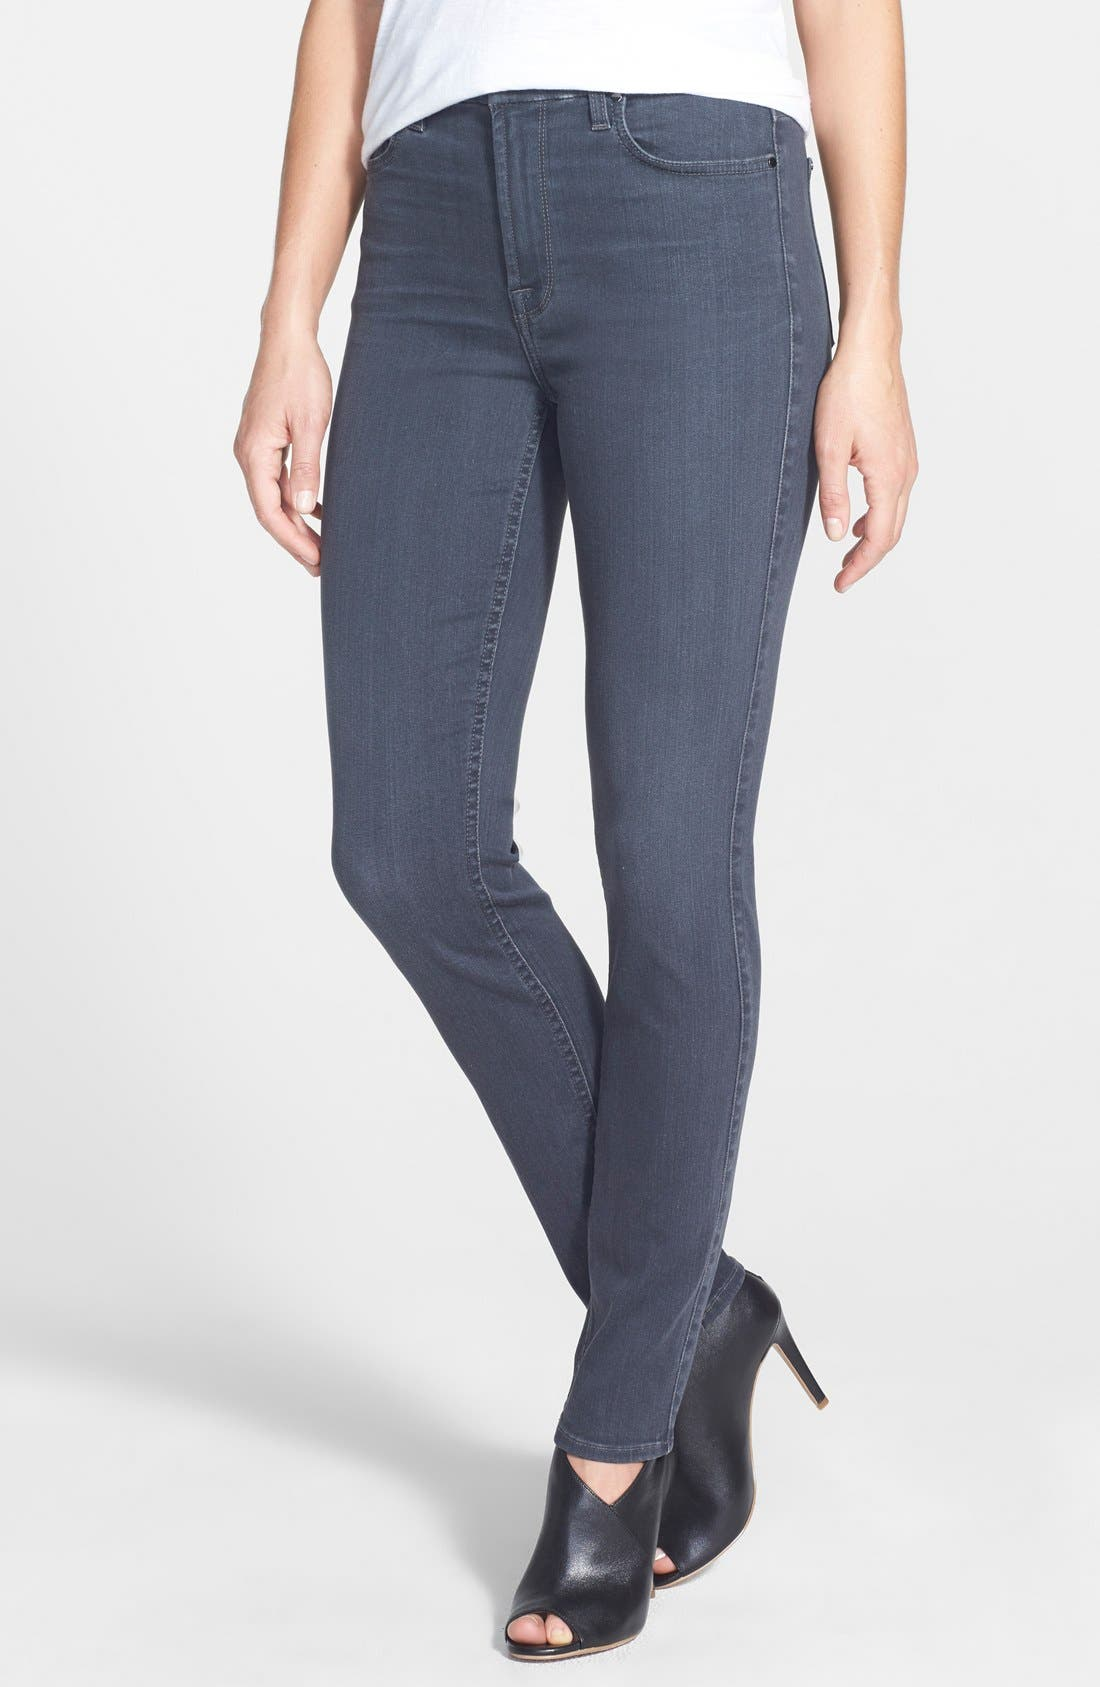 Main Image - Jen7 Stretch Skinny Jeans (Clean Grey)